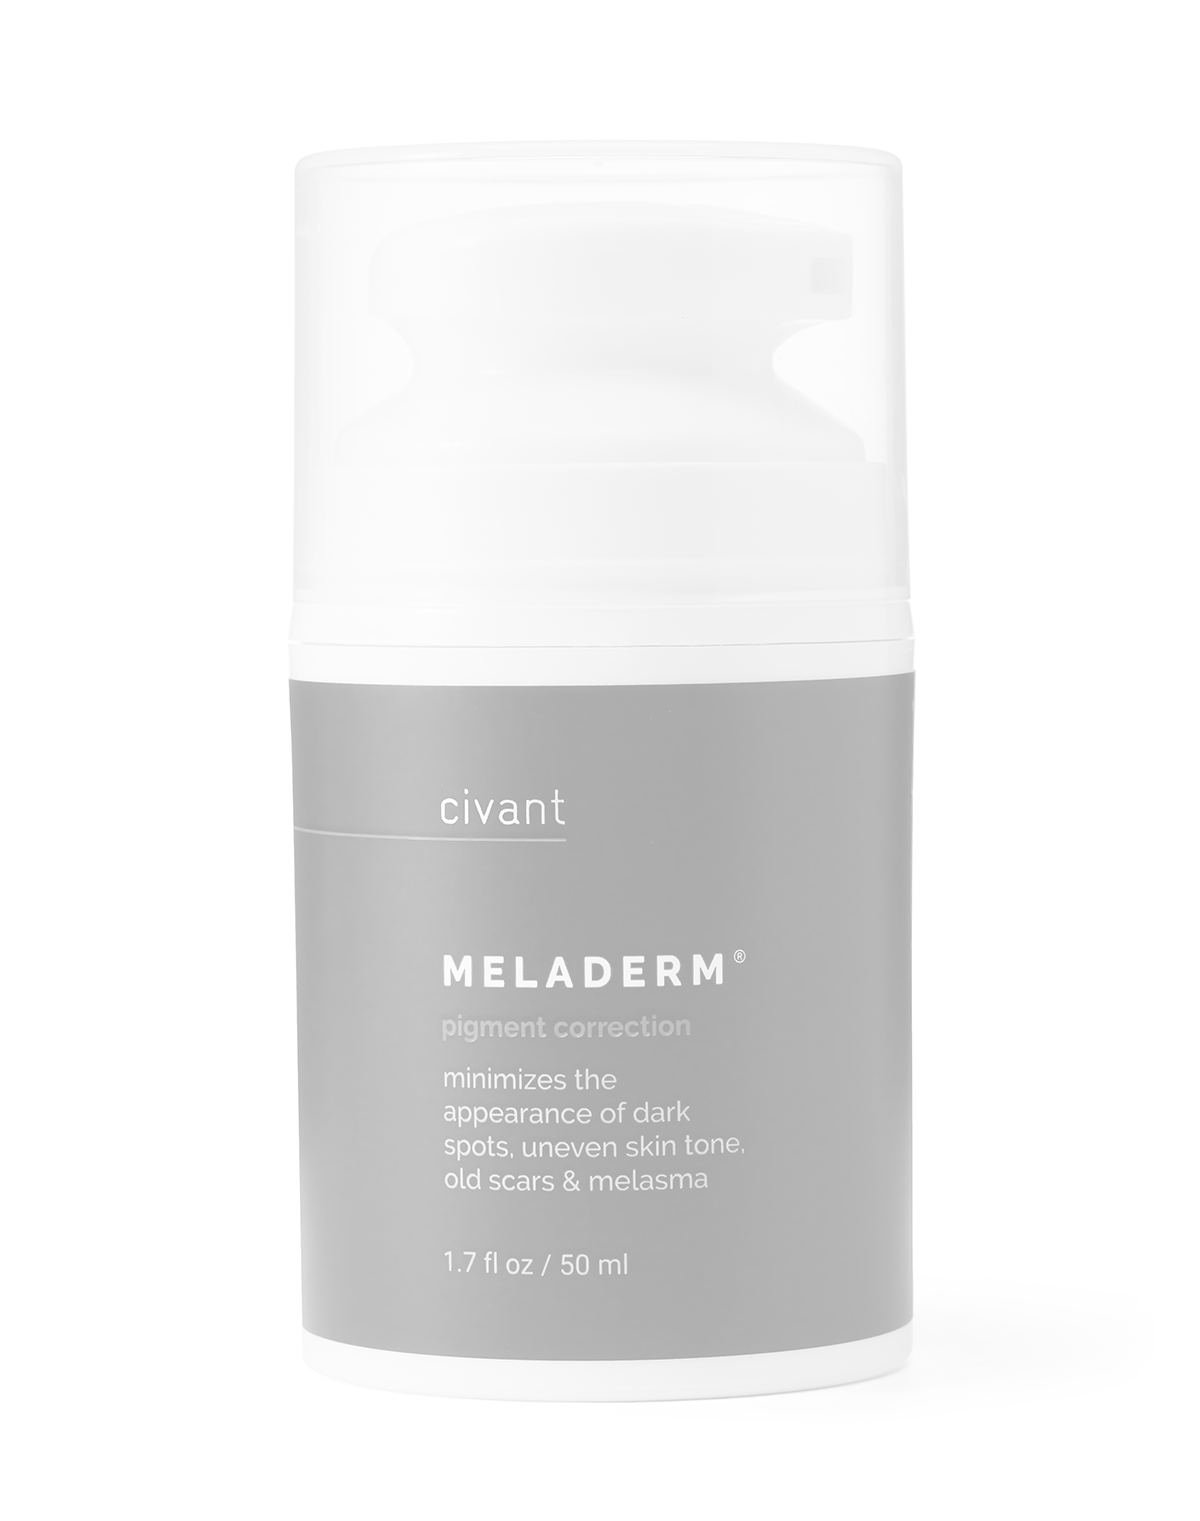 Meladerm Crema Se Consigue En Colombia - Meladerm Cream Feed - Can I Use Tretinoin And Meladerm At The Same Time? - Meladerm Advanced Skin Lightening Injections - Meladerm Kaufen In Deutschland